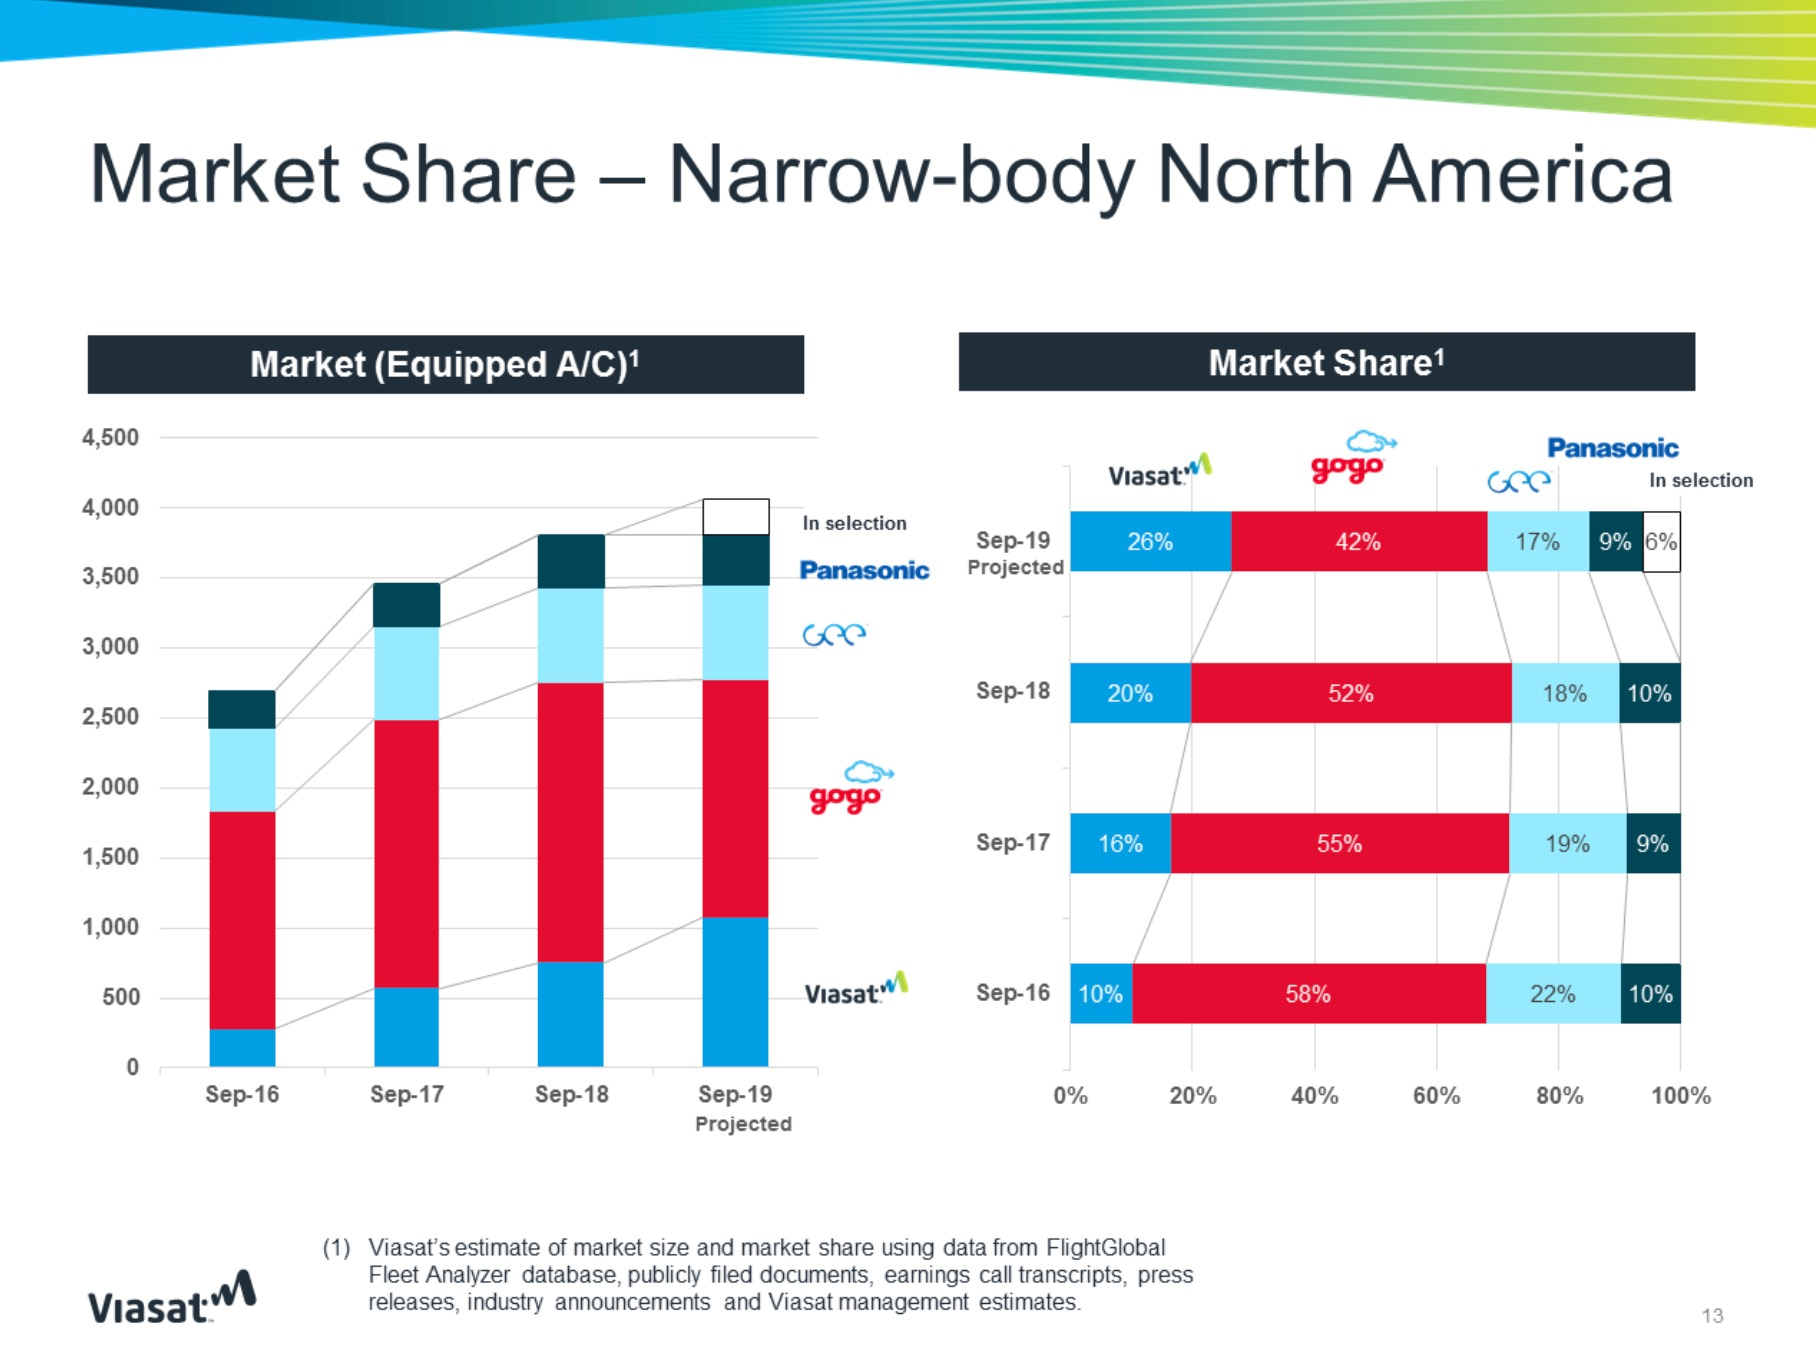 Viasat shares narrowbody IFC growth expectation for North